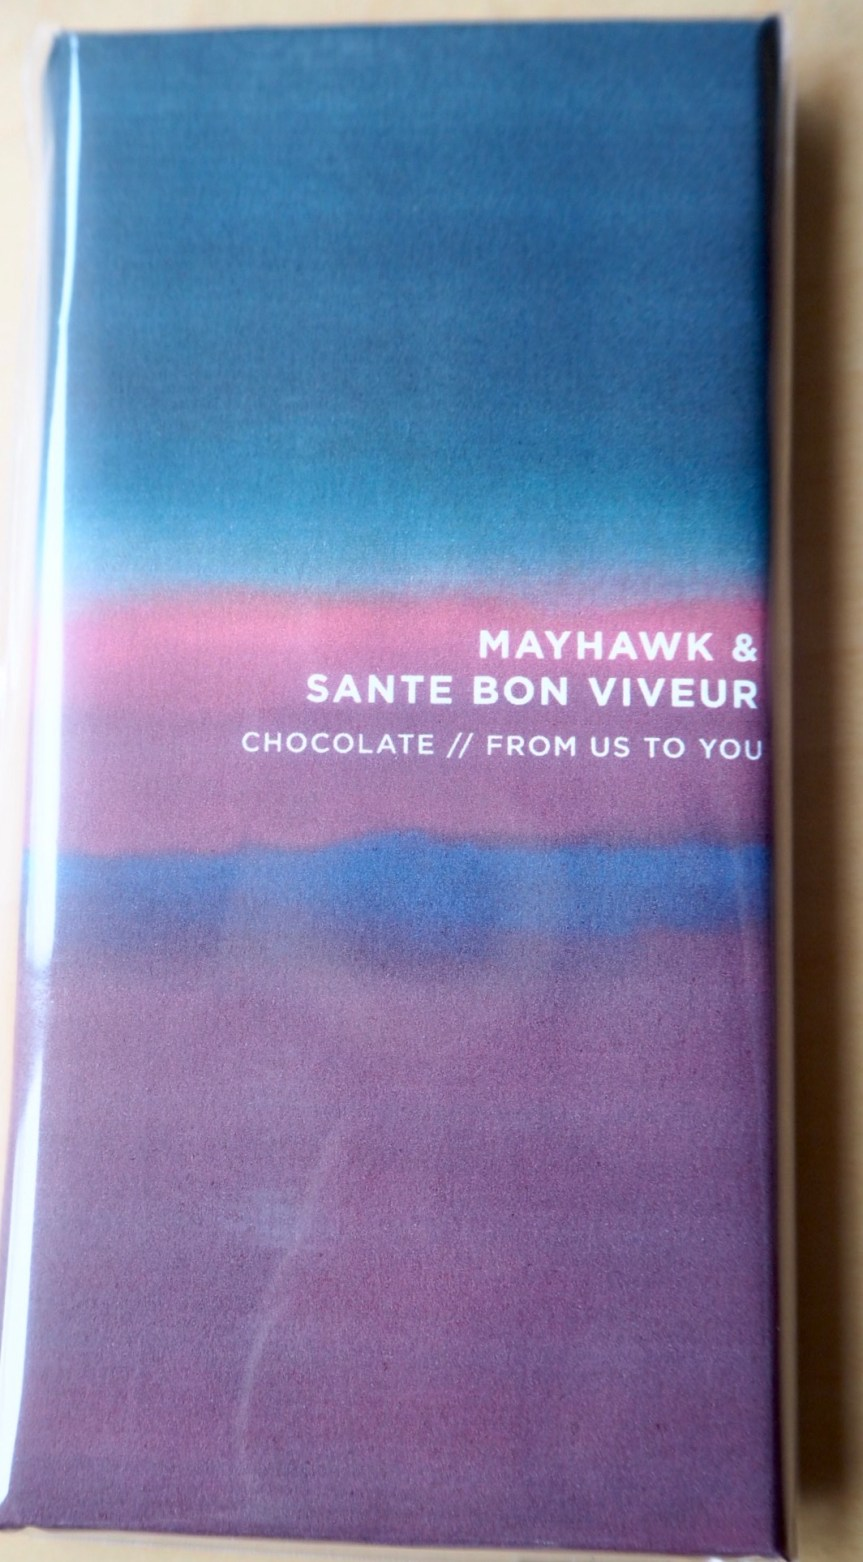 Mayhawk & Santé Bon Viveur Craft Chocolate